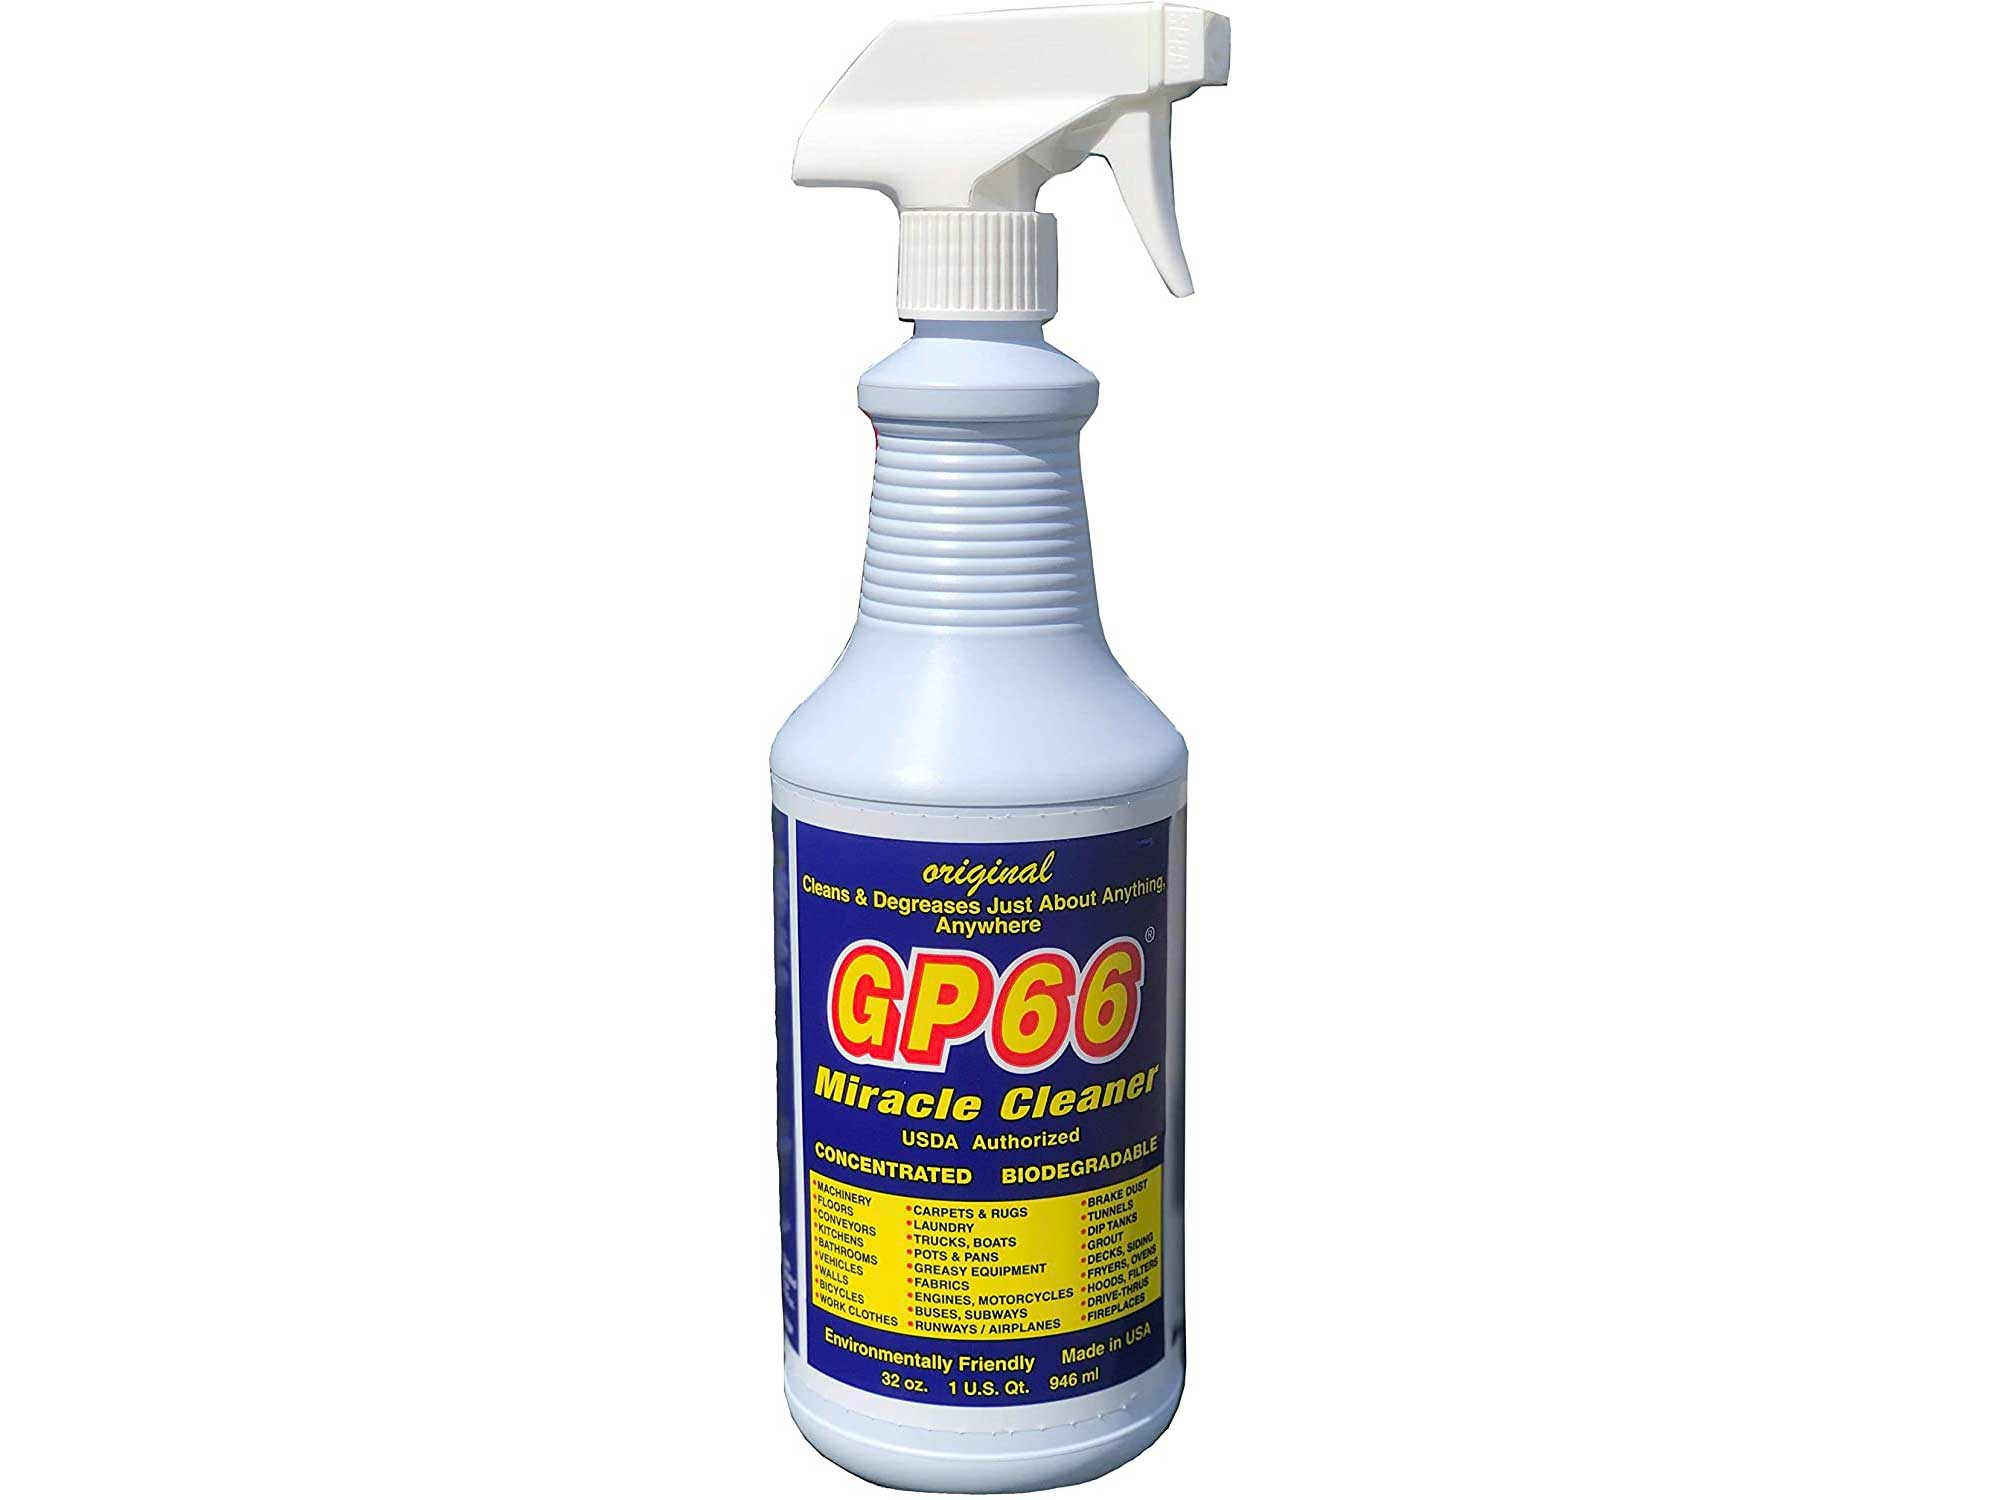 GP66 Green Miracle Cleaner Super Size! Powerful American Made Heavy Duty From GP66 (32 oz.) All Purpose Cleaner Deep Cleaning Spray For the Toughest Dirt, Grease, and Grime Kitchen Cleaner Oven Cleaner Bathroom Cleaner Superior Strength